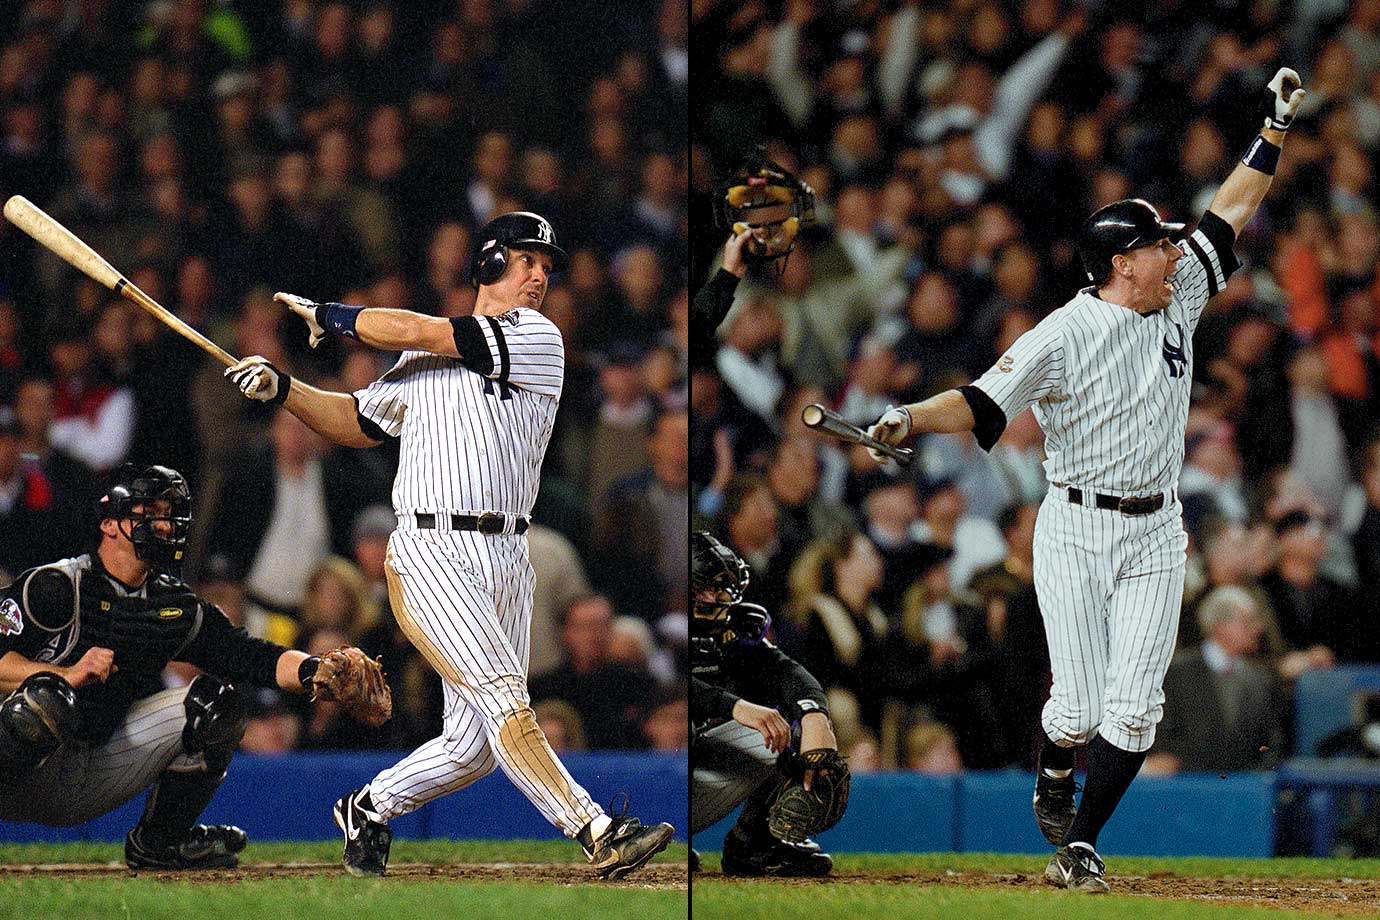 For the second time in less than 24 hours, the Yankees got a game-tying two run homer with two outs in the ninth inning against Arizona's Byung-Hyun Kim. In Game 4 it was Tino Martinez and in Game 5 it was Scott Brosius who rescued New York. The Yankees went on to win Game 5 in extra innings.